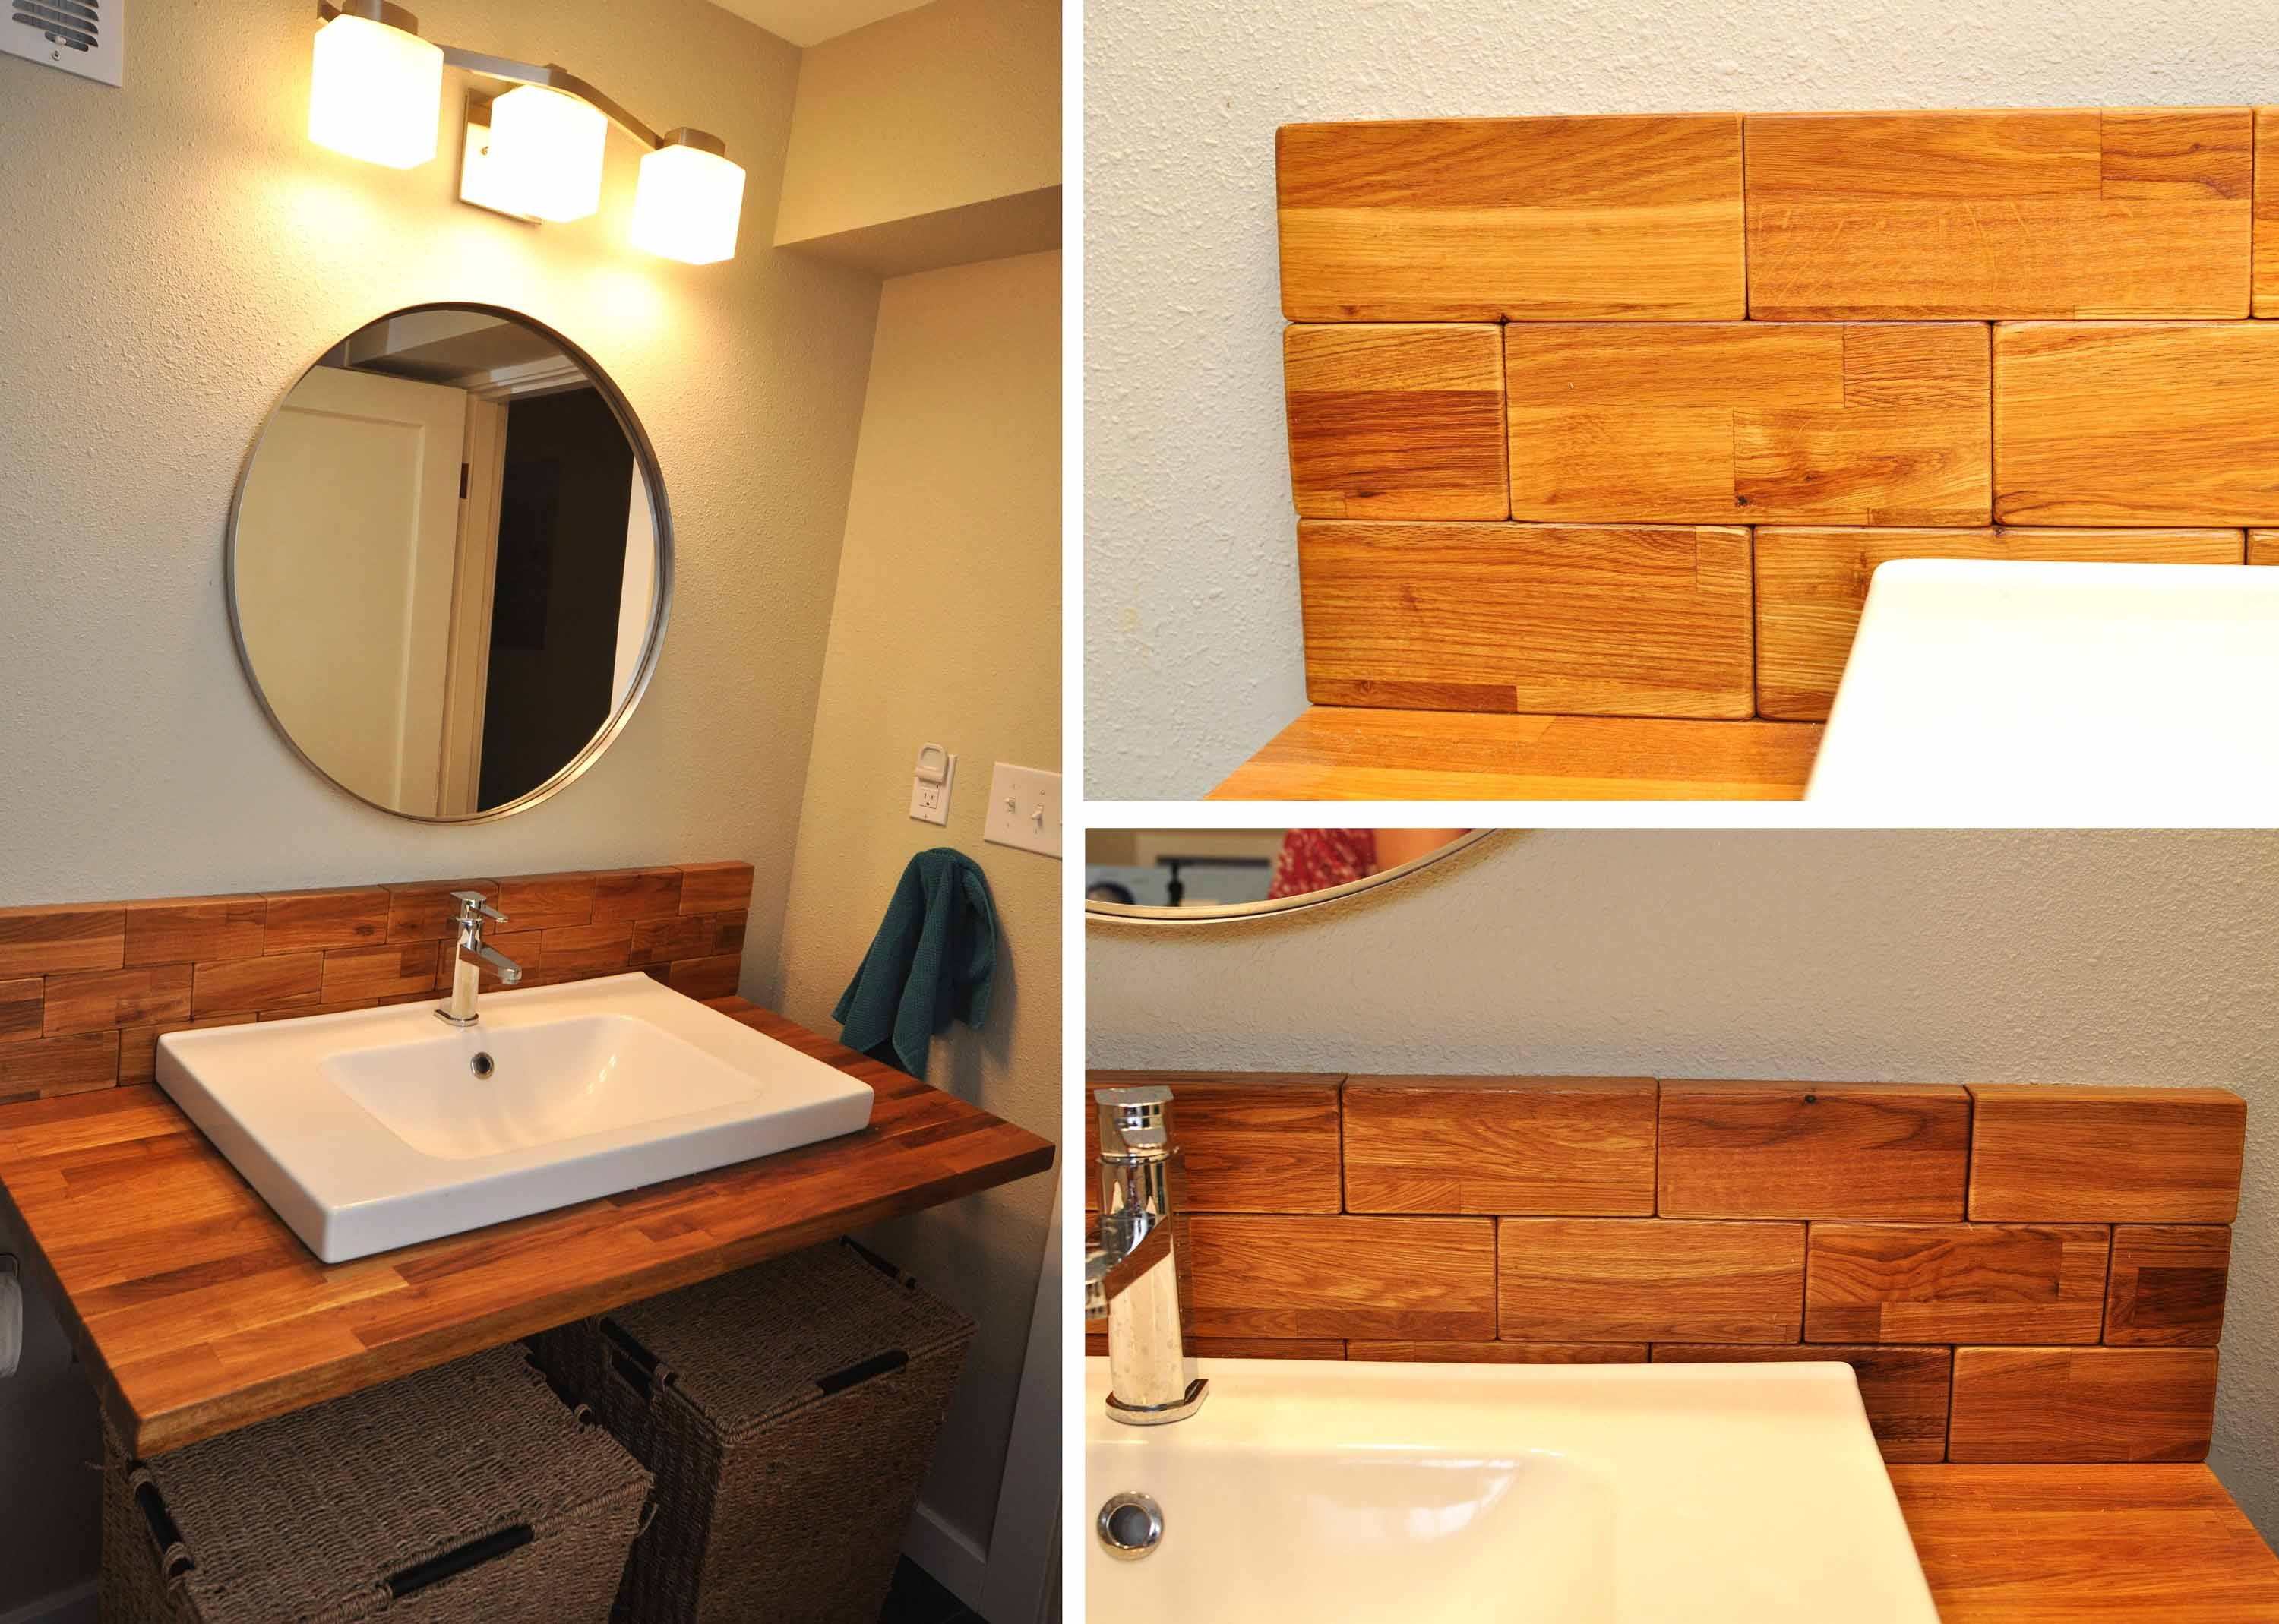 Best Wood For Bathroom Vanity Top